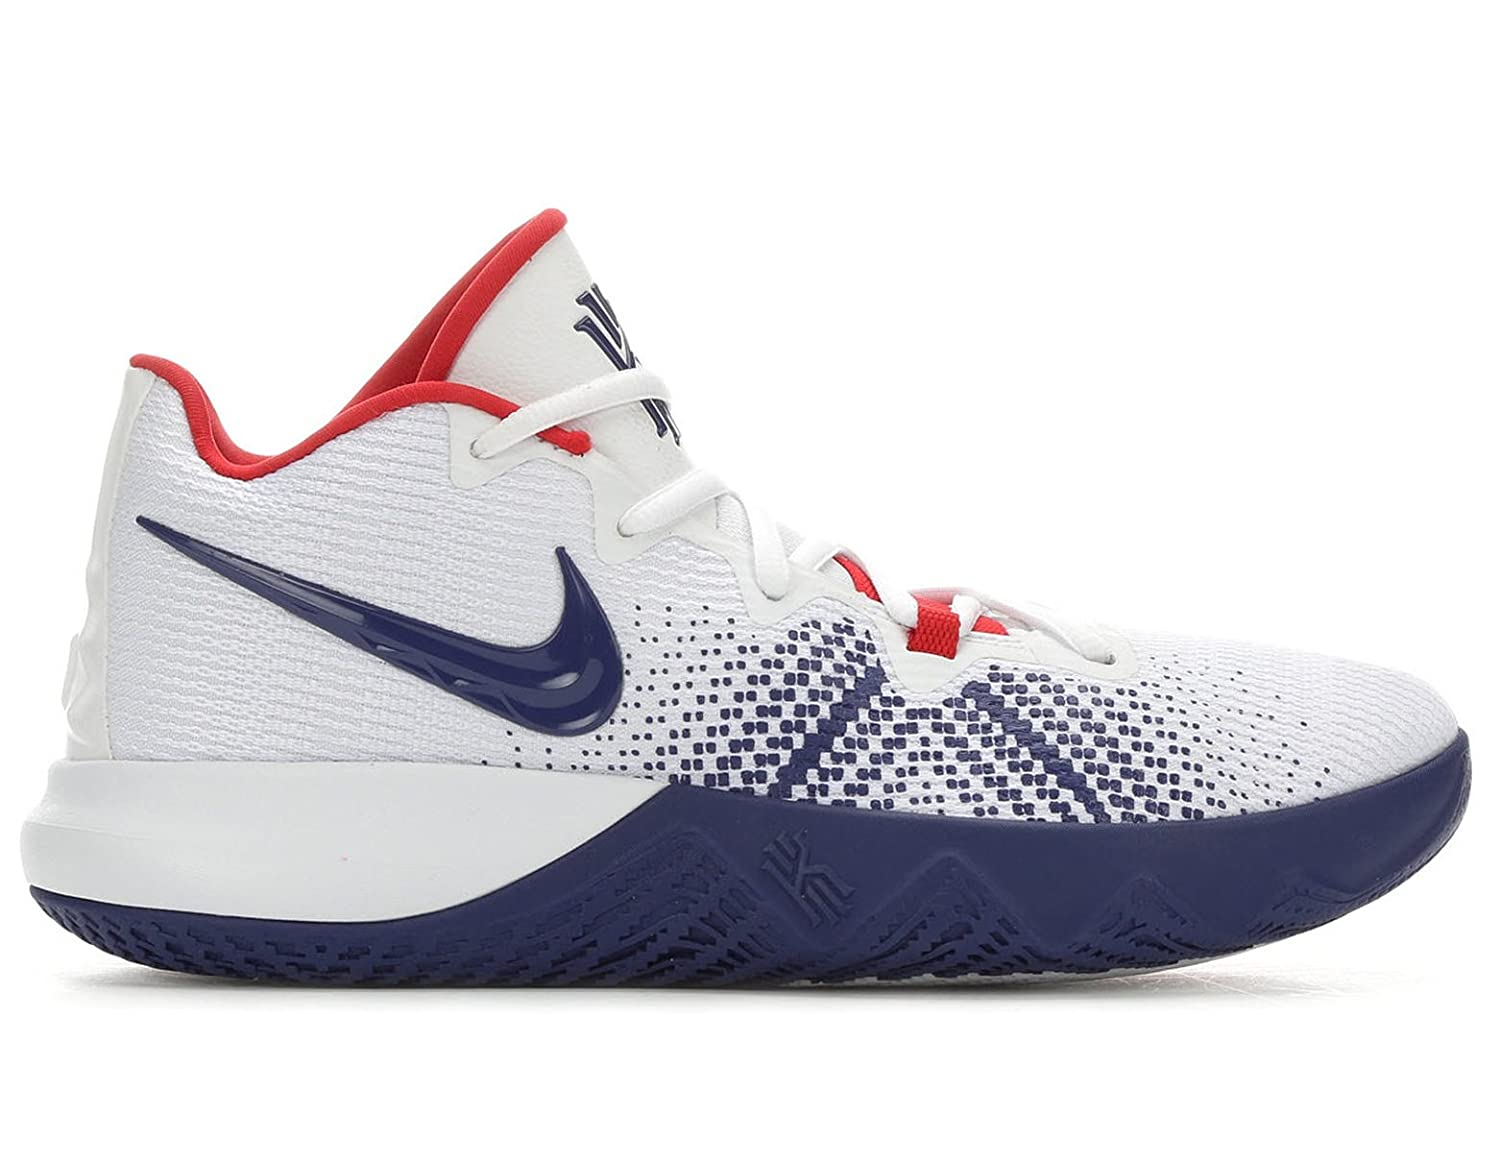 the best attitude 1daf4 03ae5 Amazon.com   NIKE Men s Kyrie Flytrap Basketball Shoes, (White Blue, 11 D  (M) US)   Fashion Sneakers